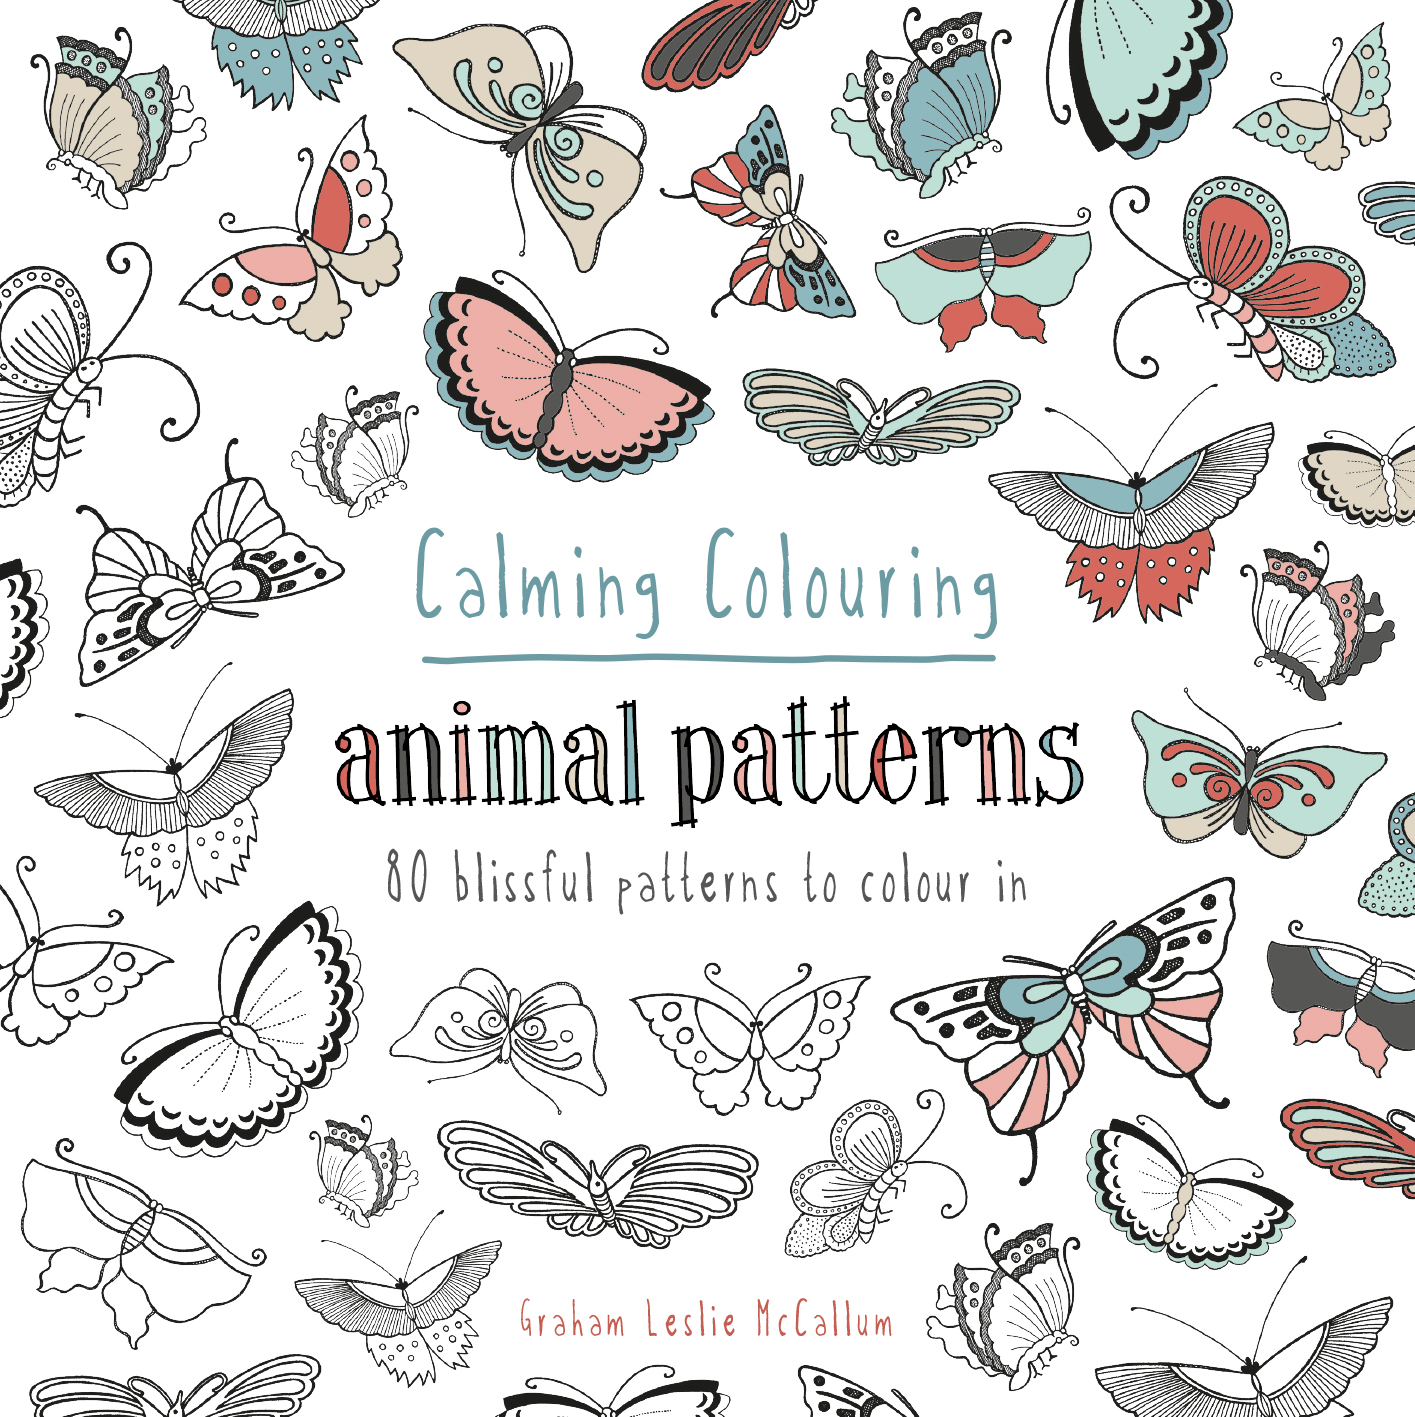 Calming Colouring Animal Patterns